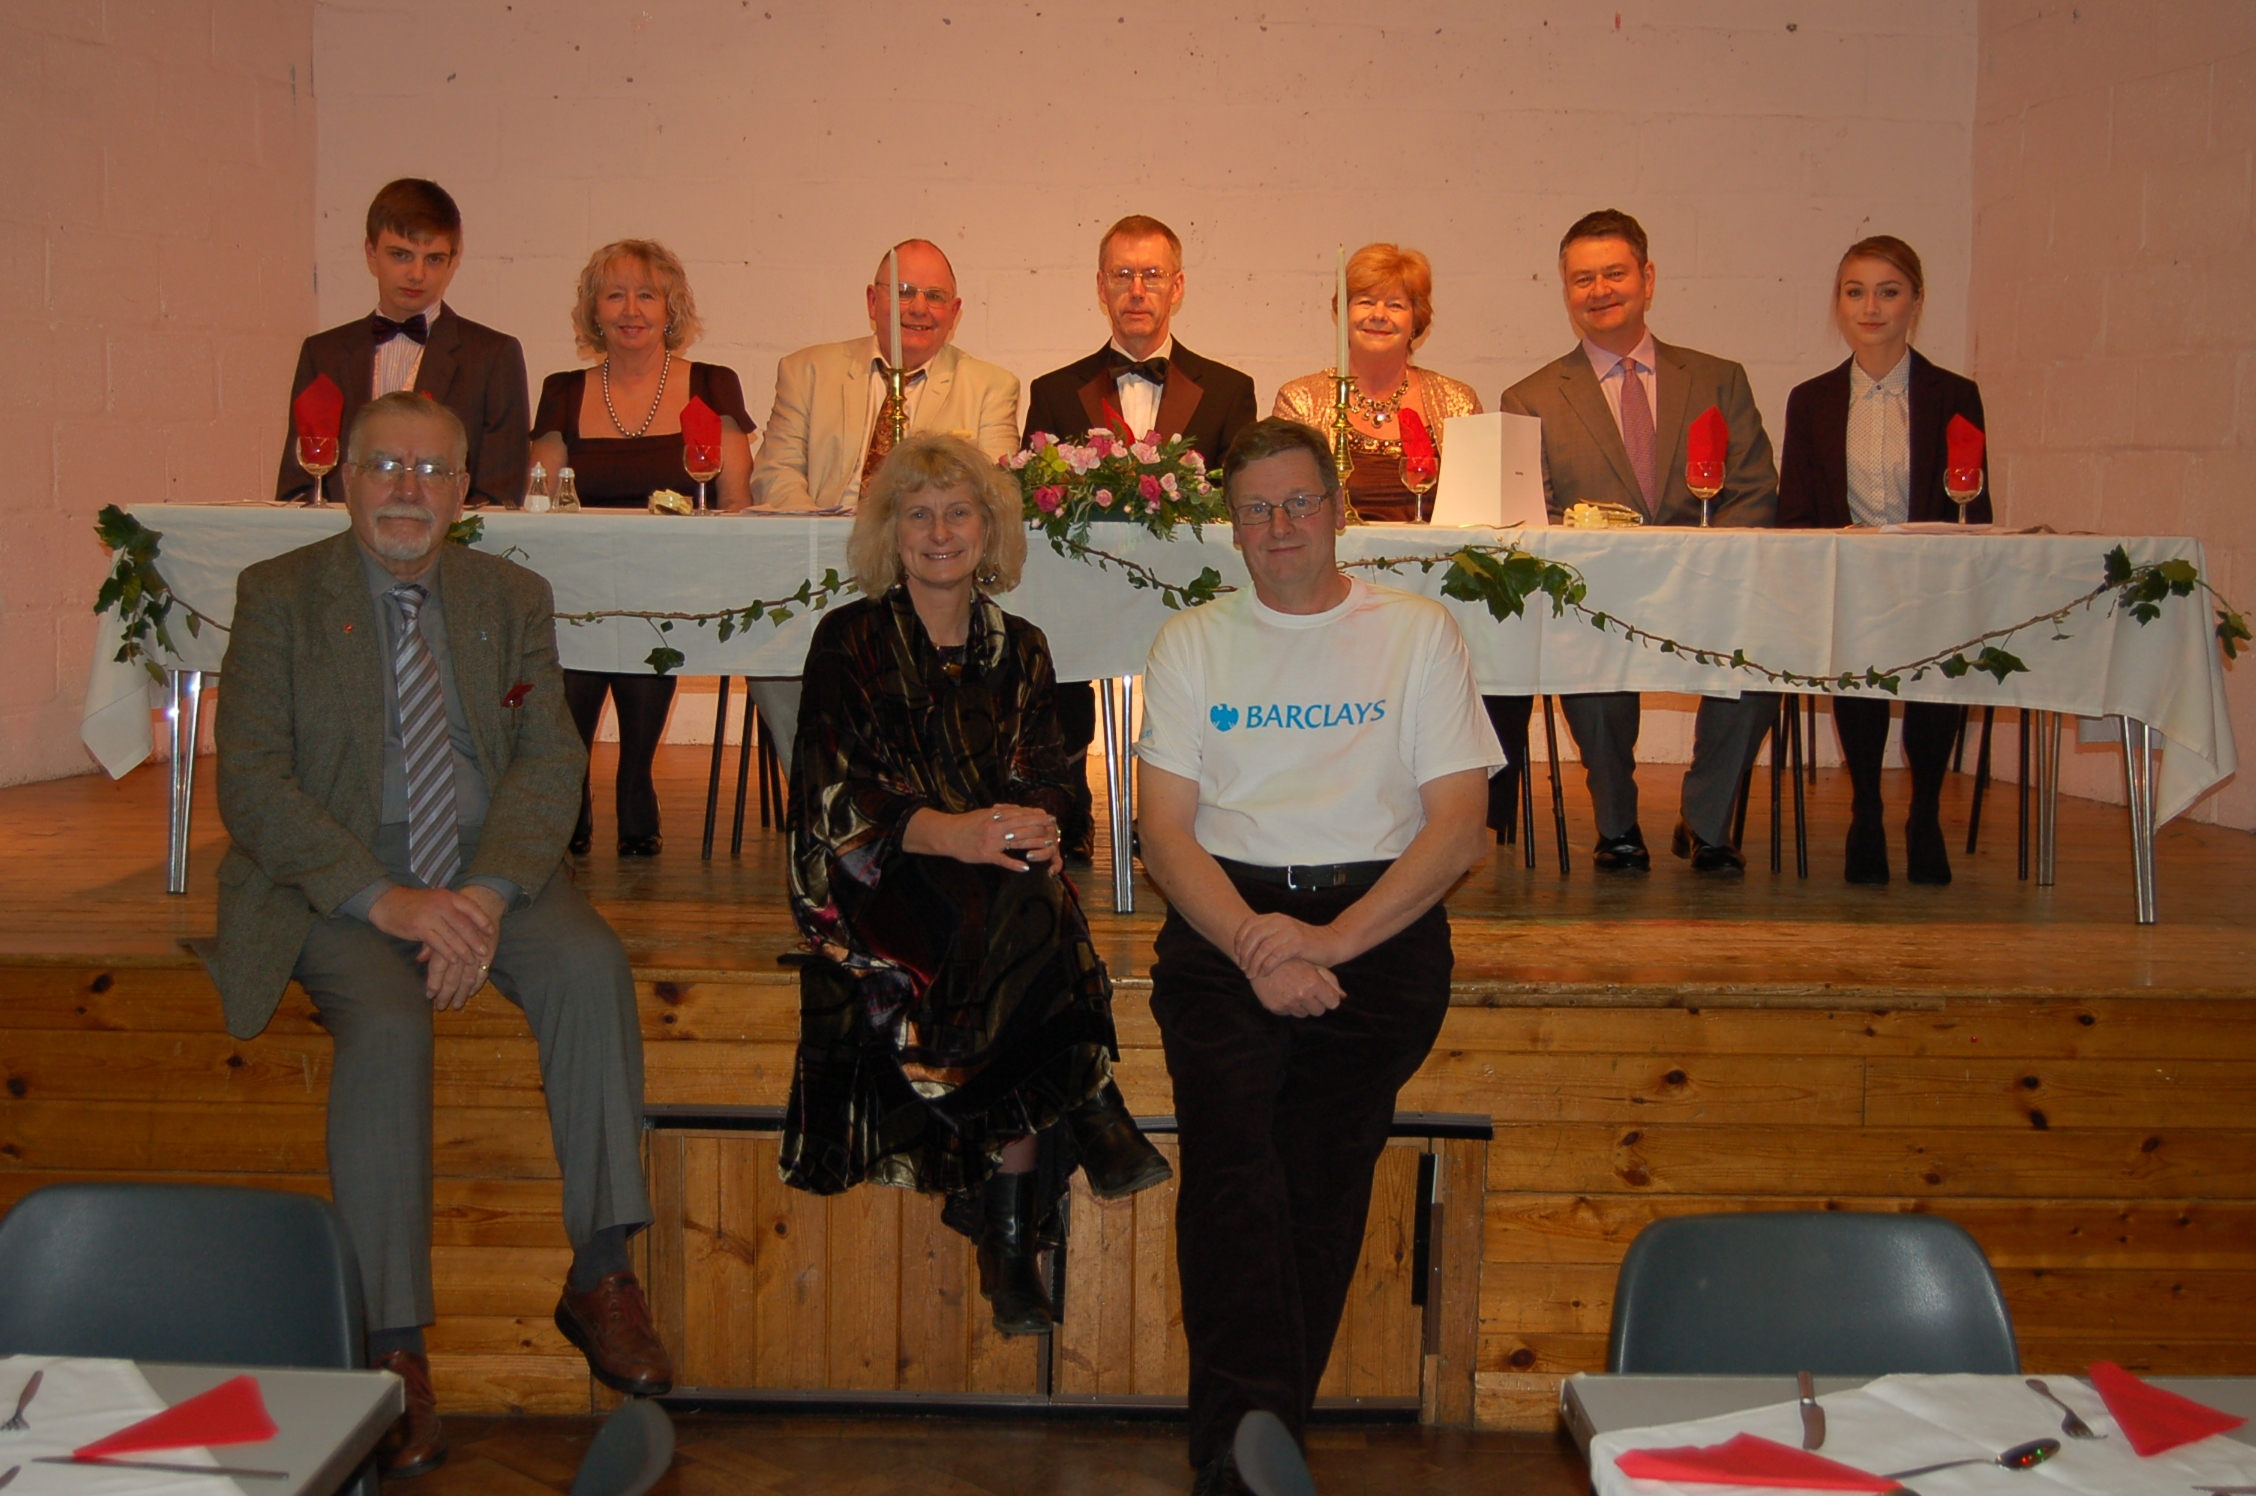 Murder mystery organisers and volunteers